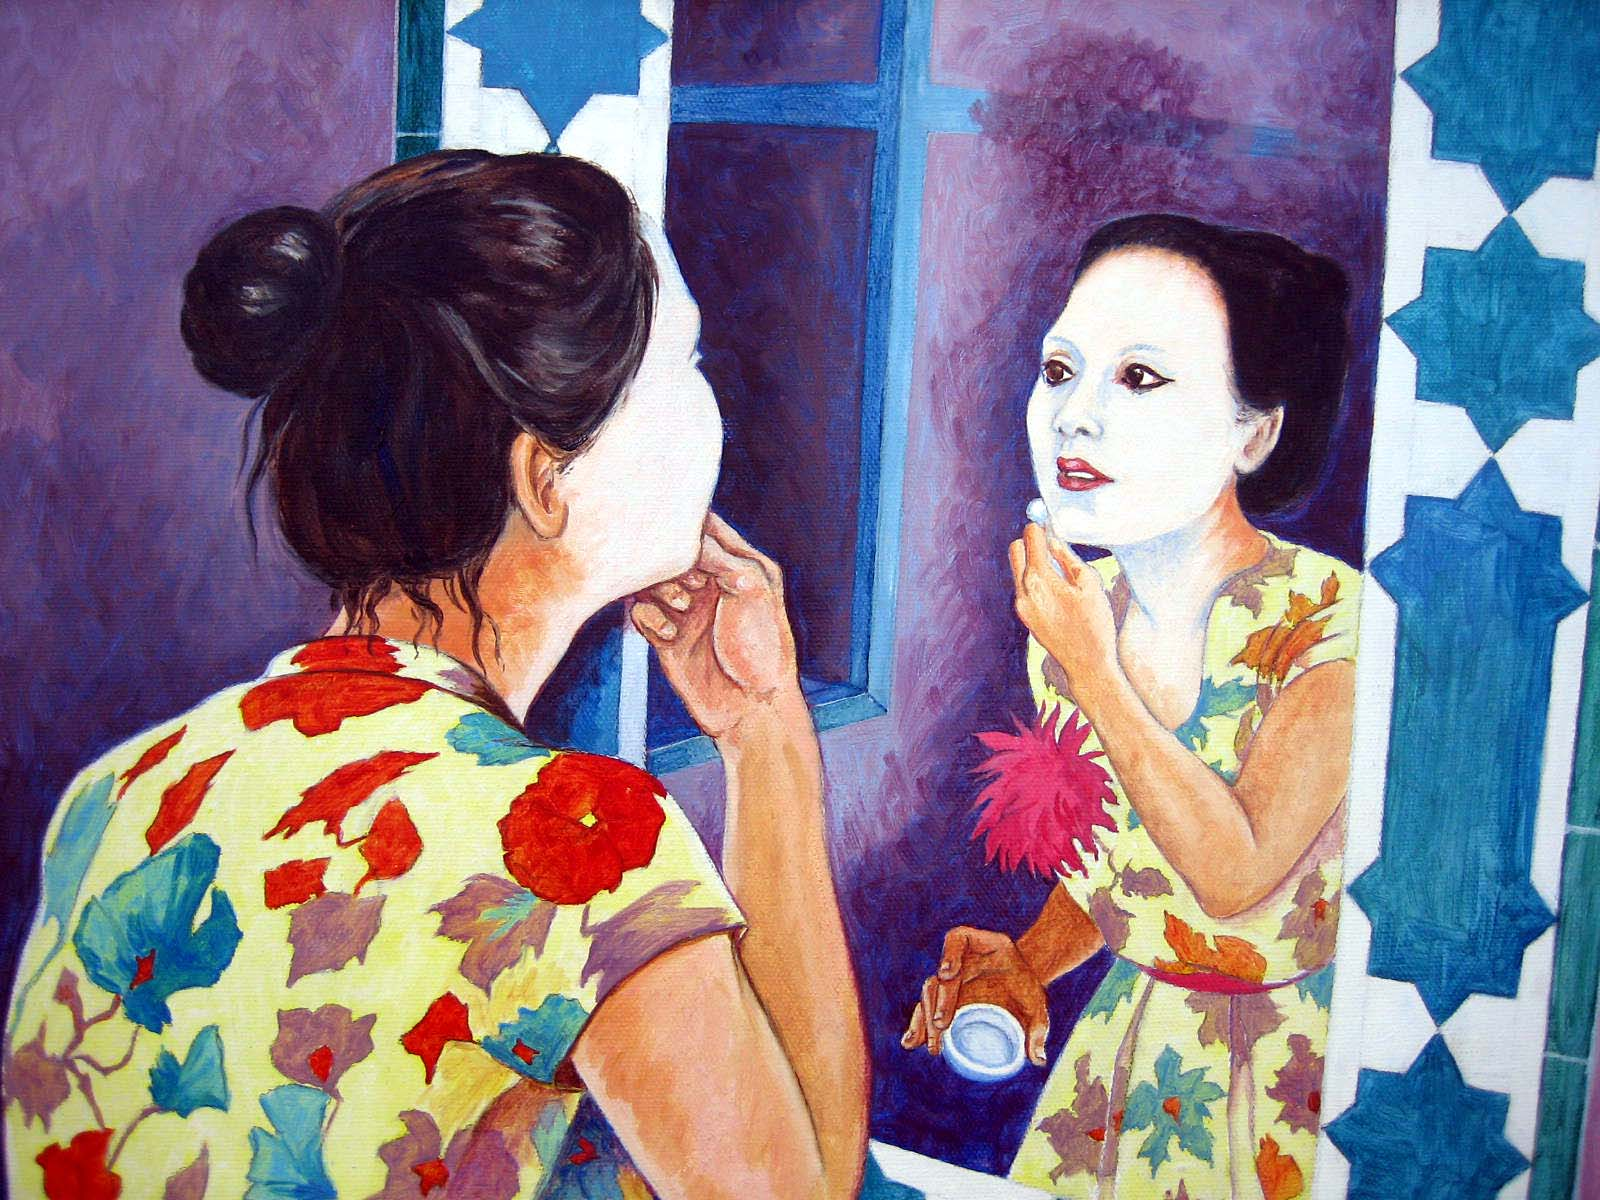 Getting Ready, painting, 2006